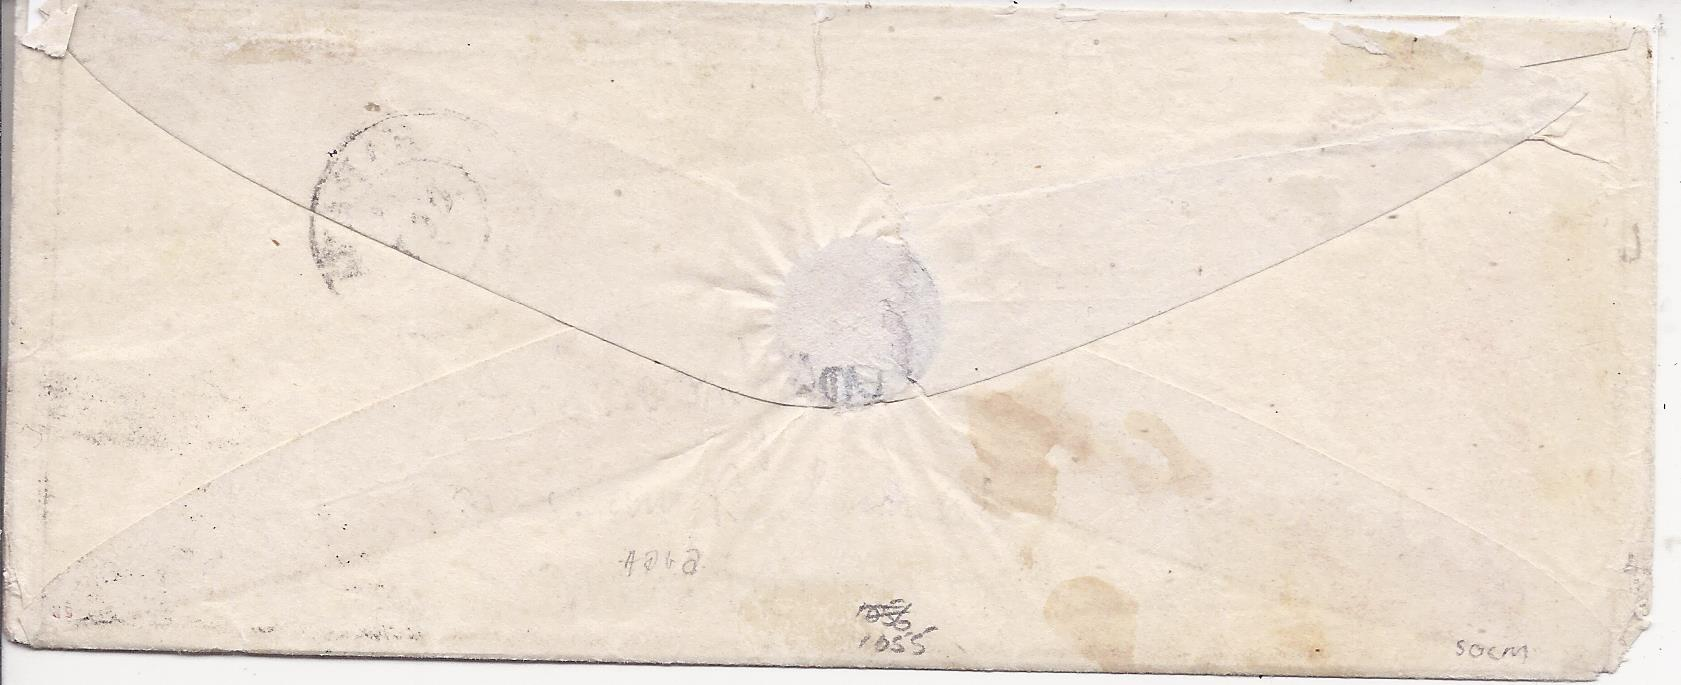 Bahamas (Ship Letter) 1864 incoming cover from Habana, Cuba franked 1r. with bar cancel and cds above and bearing fine example of the very rare SHIP-LETTER/ NASSAU cds, with manuscript �Unclaimed� and handstamped �ADVERTISED�; trivial corner fault to envelope, otherwise fine and attractive example